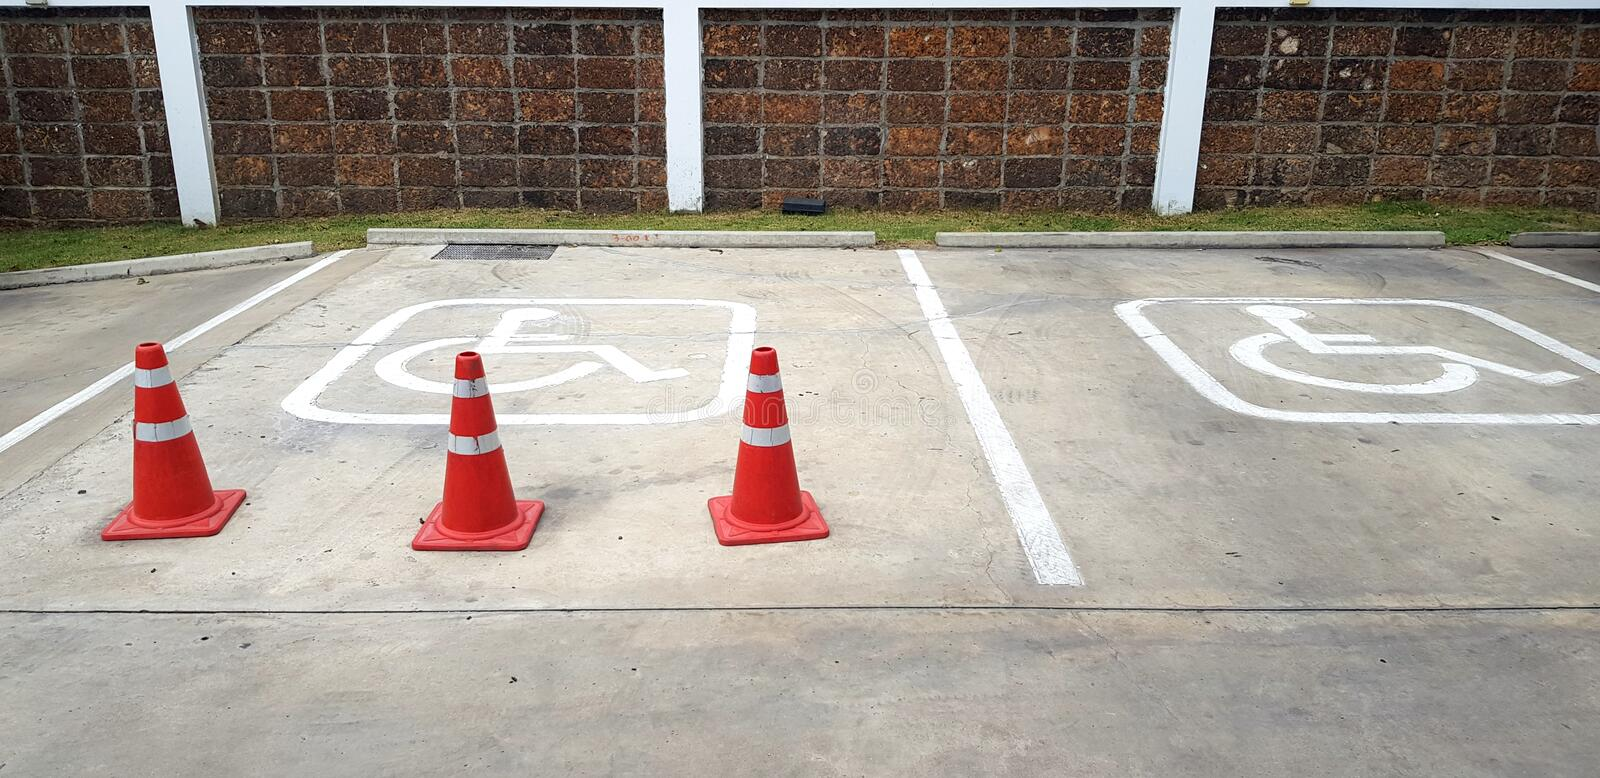 Three orange traffic cone on street for reservation parking of disabled people. With brown brick wall background - Symbol, Restrict area and Service royalty free stock photography